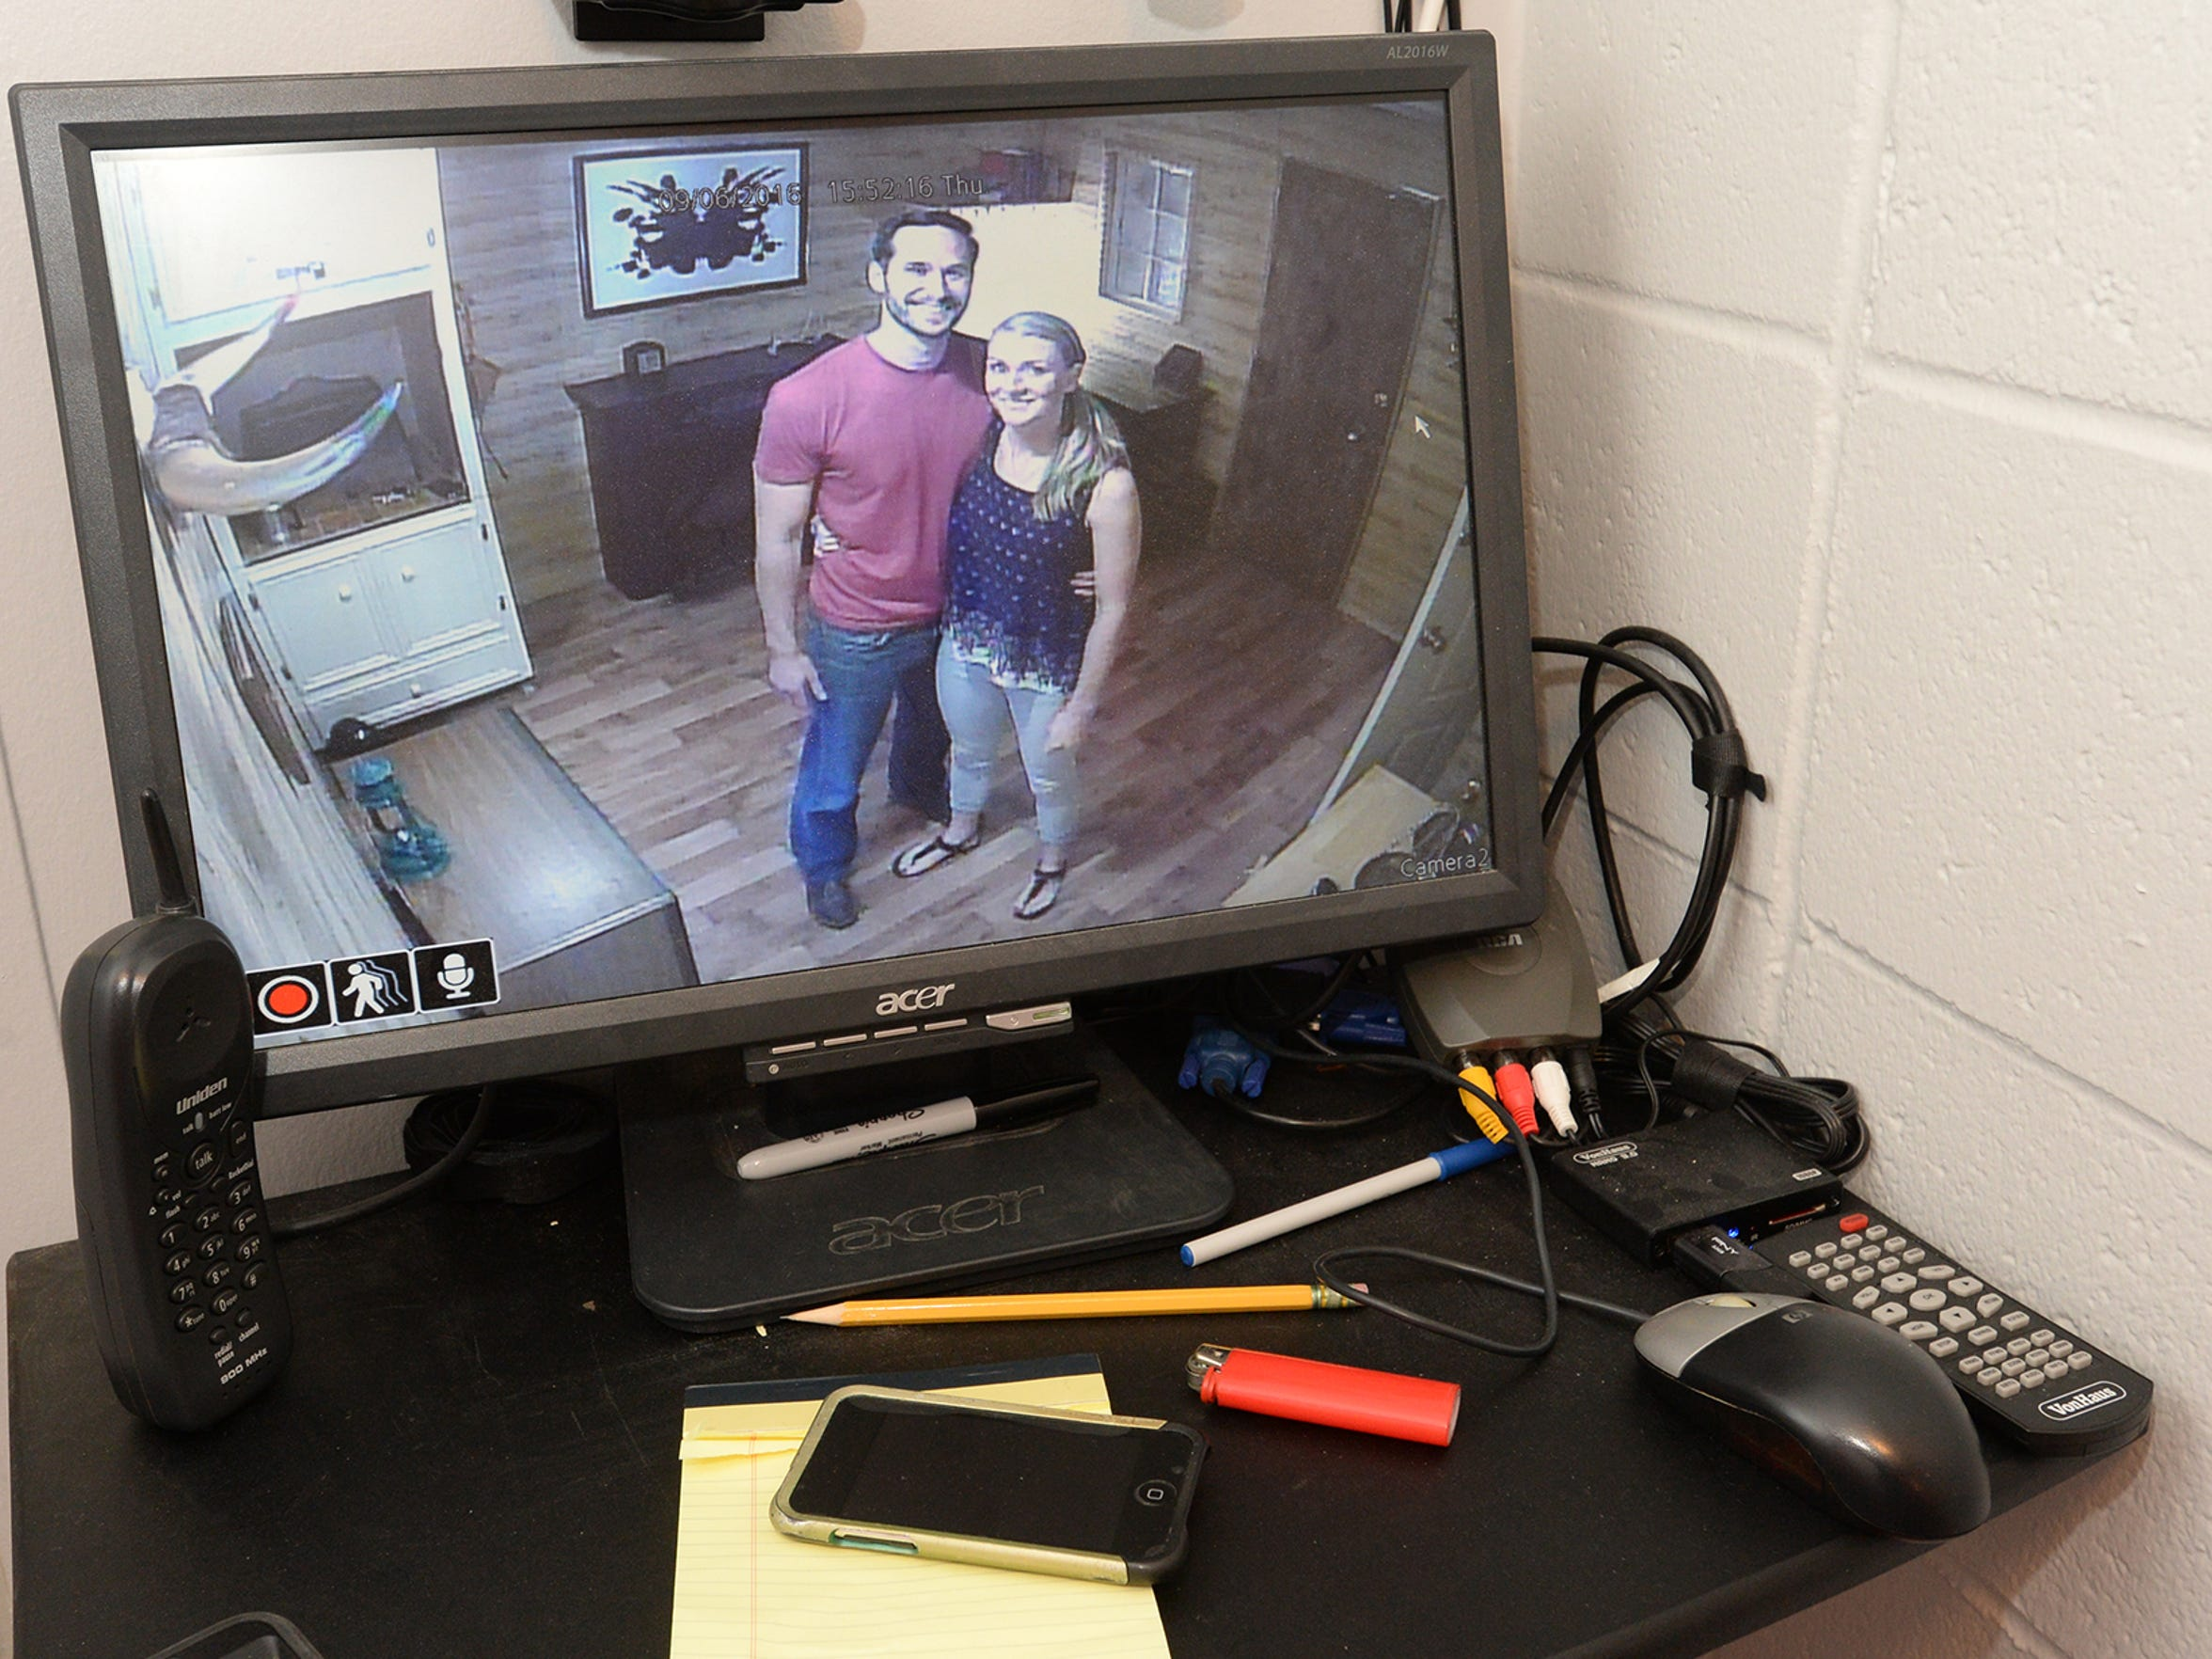 Will and Kim Rutherford own Escape Artist Greenville,